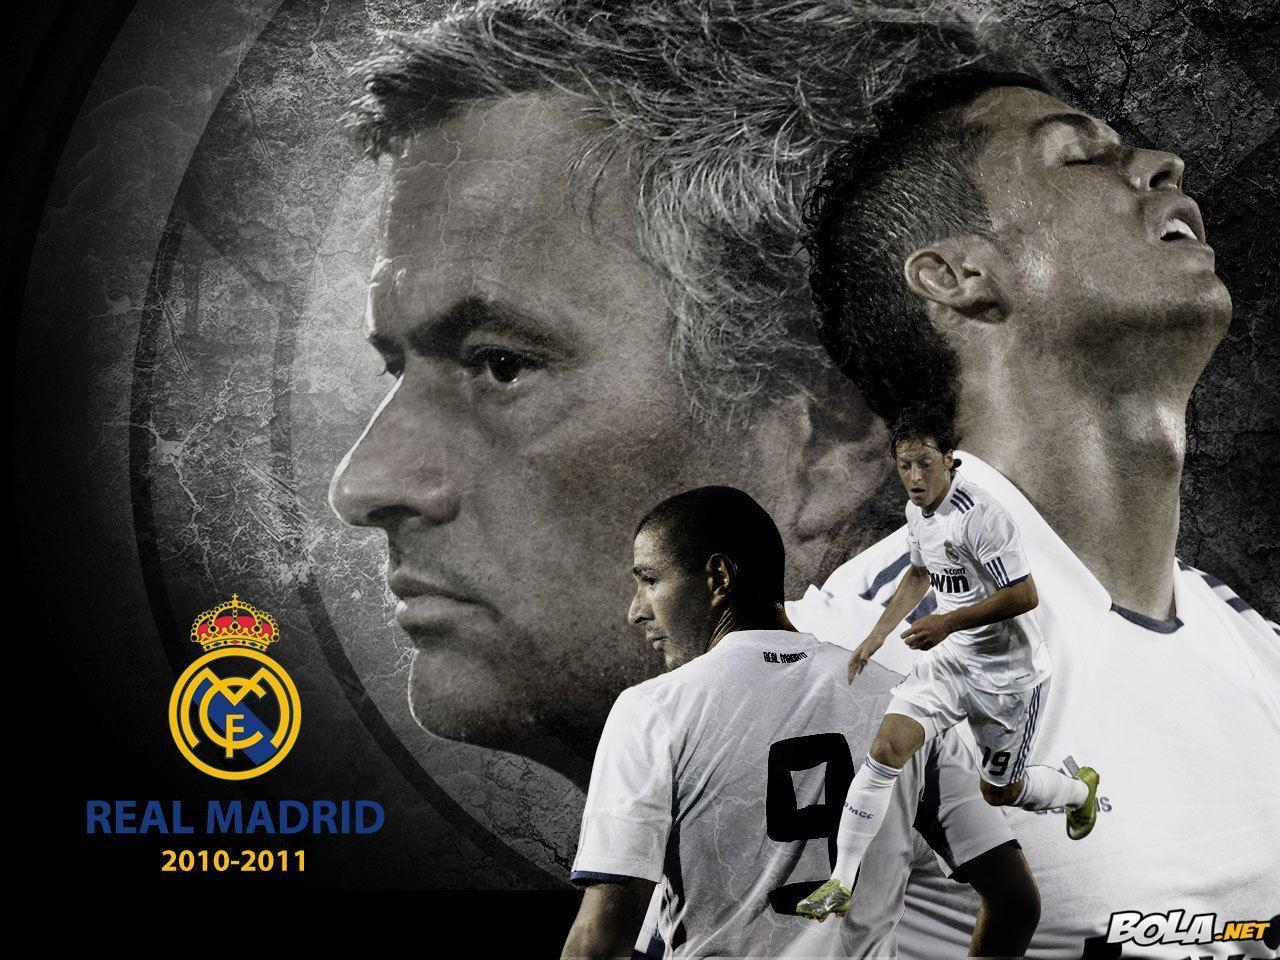 Real Madrid C.F. Wallpaper (24739149) - Fanpop